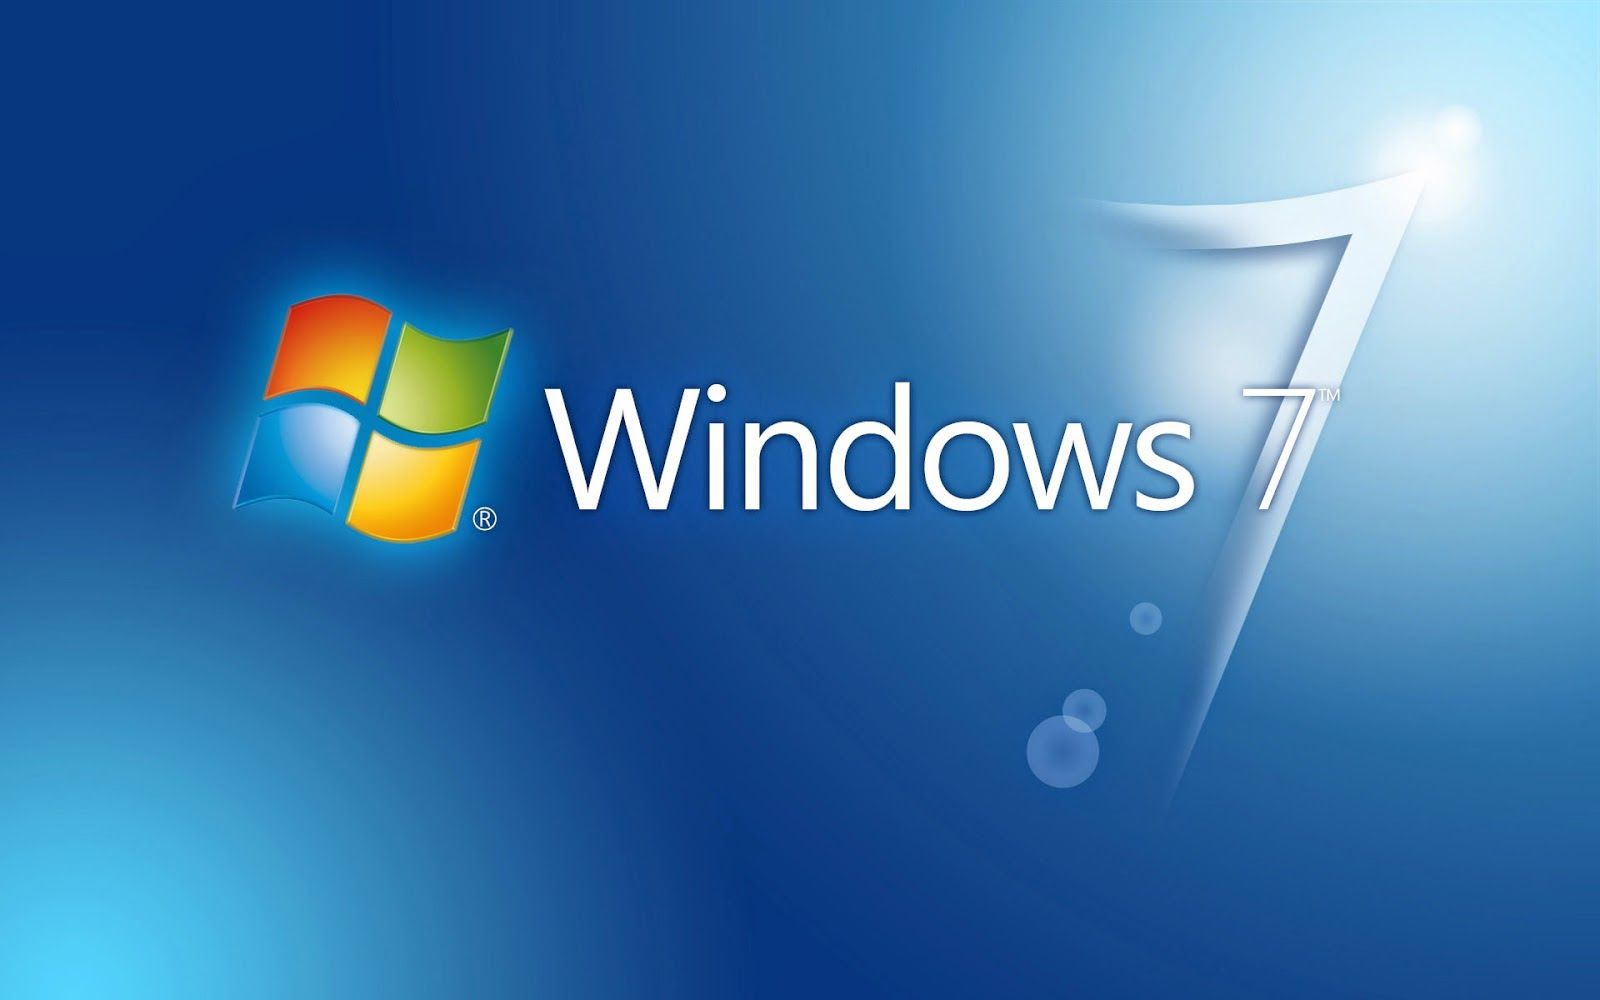 Download Windows Wallpaper Location Gallery 1600 1000 Windows Wallpapers Location 31 Wallpapers Adorab Microsoft Windows Windows 7 Themes Windows Wallpaper